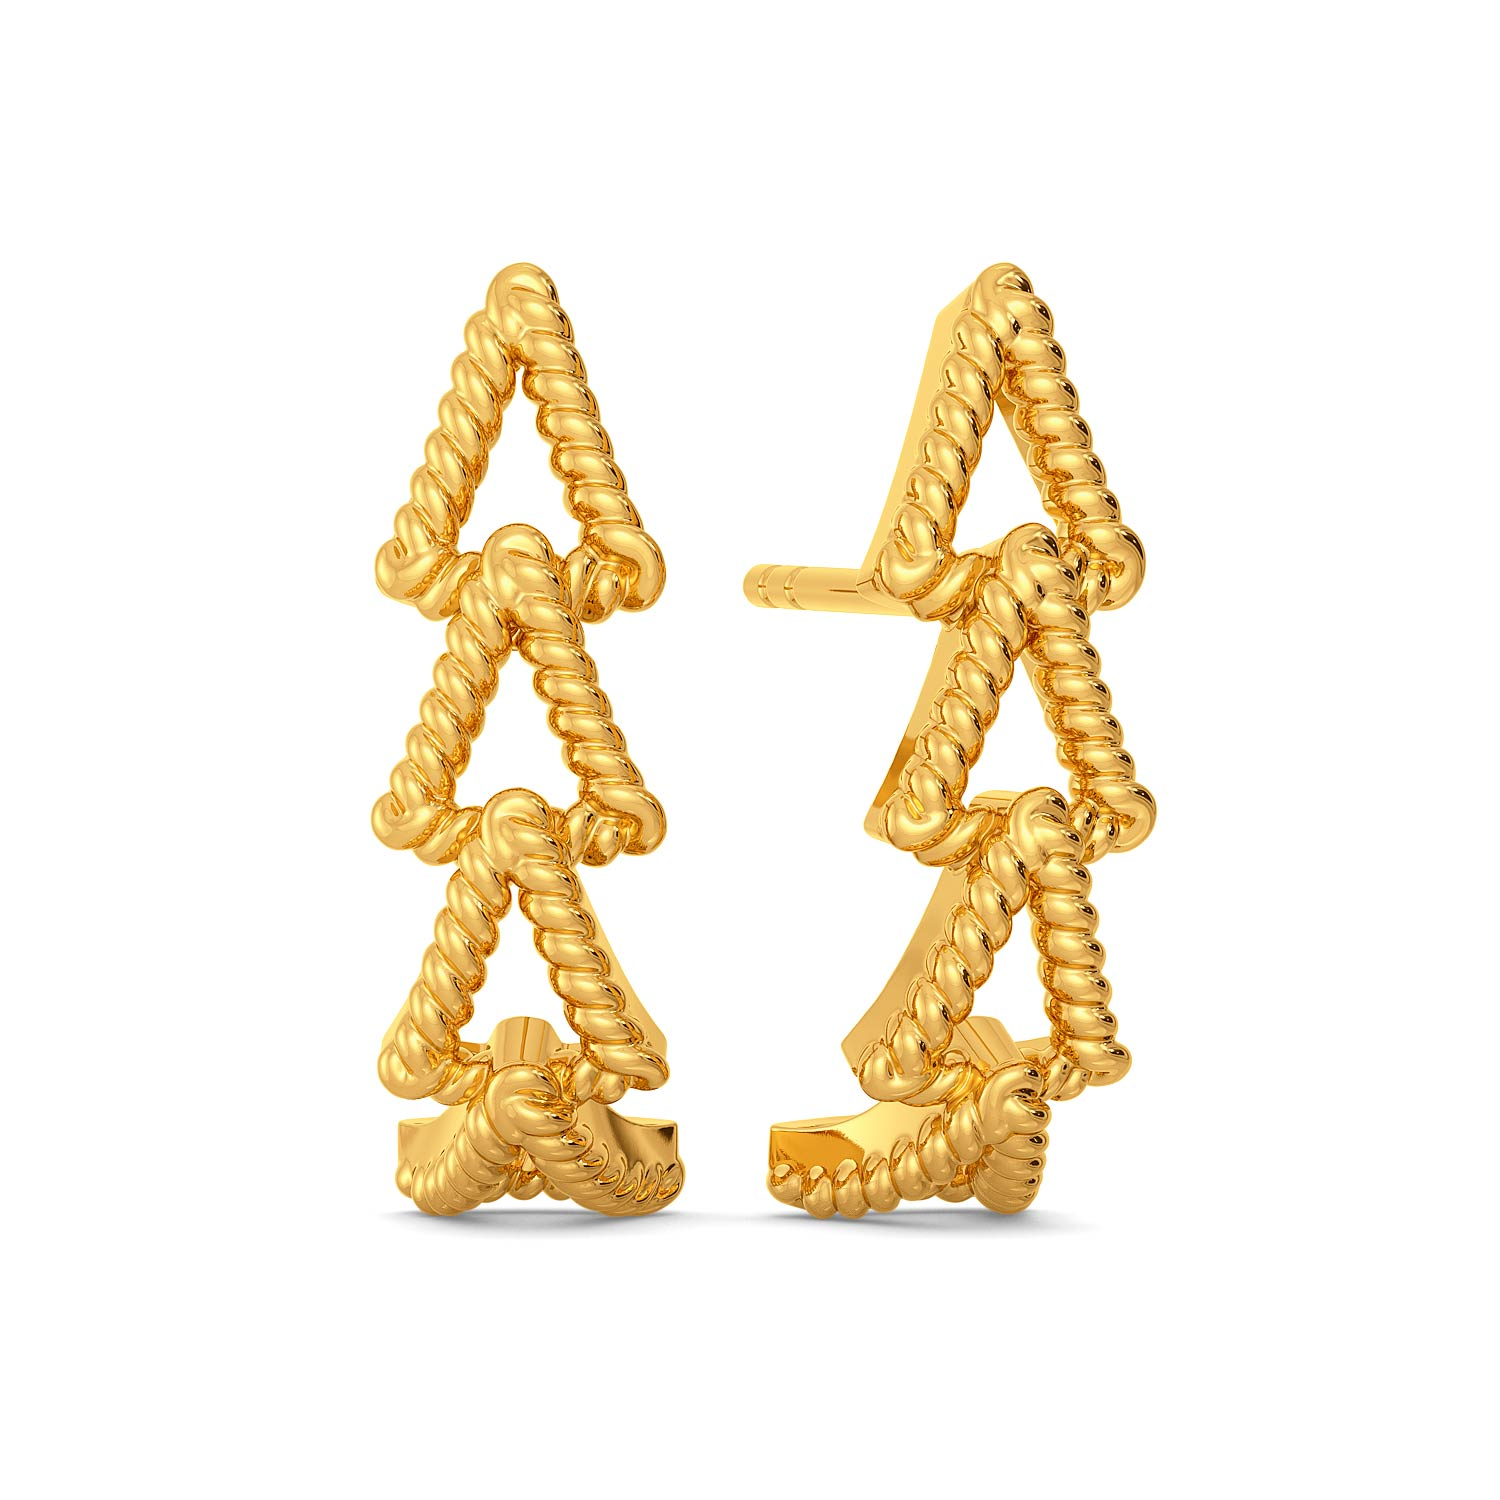 Lily Trilogy Gold Earrings